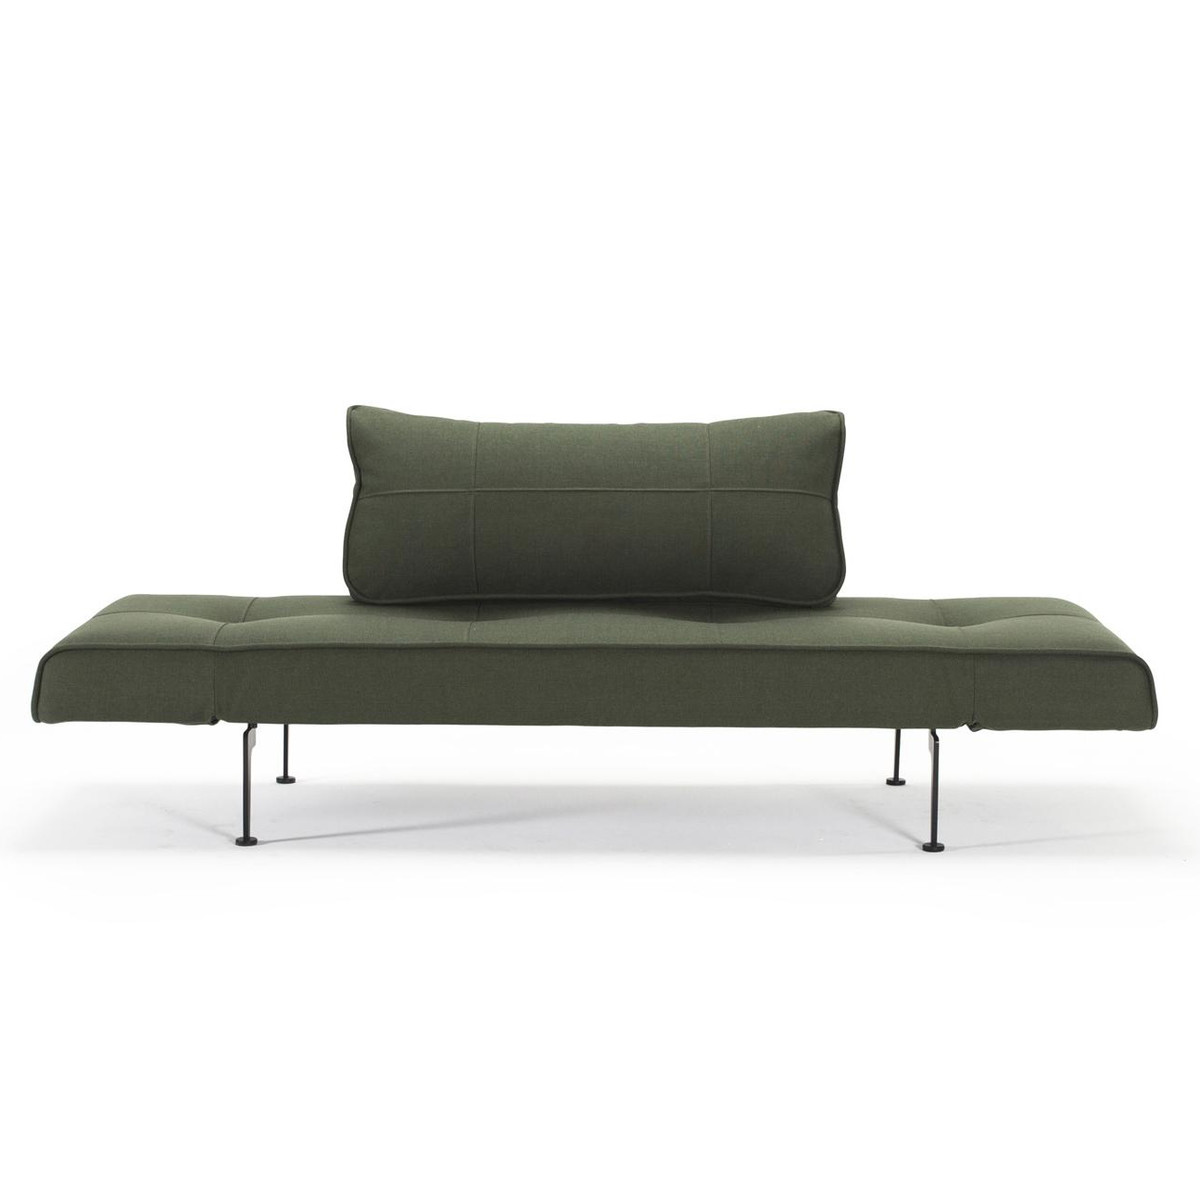 Schlafsofa dunkelgrün  Zeal Laser Sofa Bed | Innovation | AmbienteDirect.com